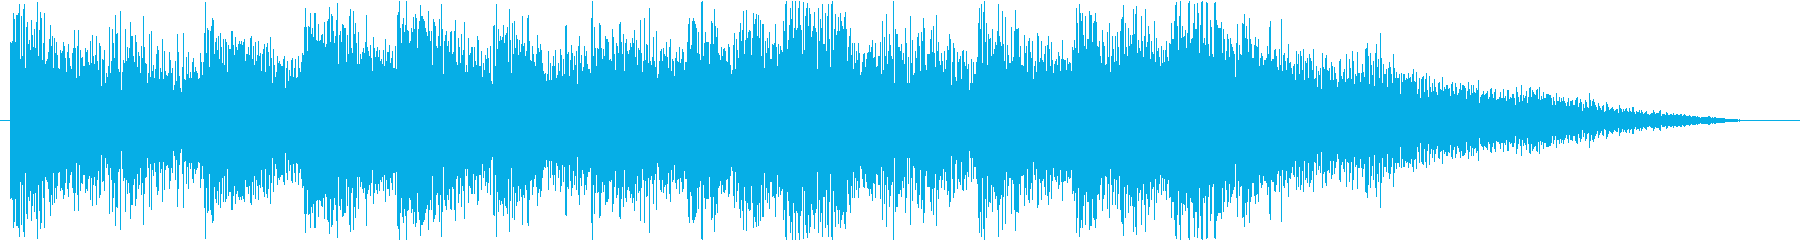 Express a fun feeling with sound logo and synth's reproduced waveform